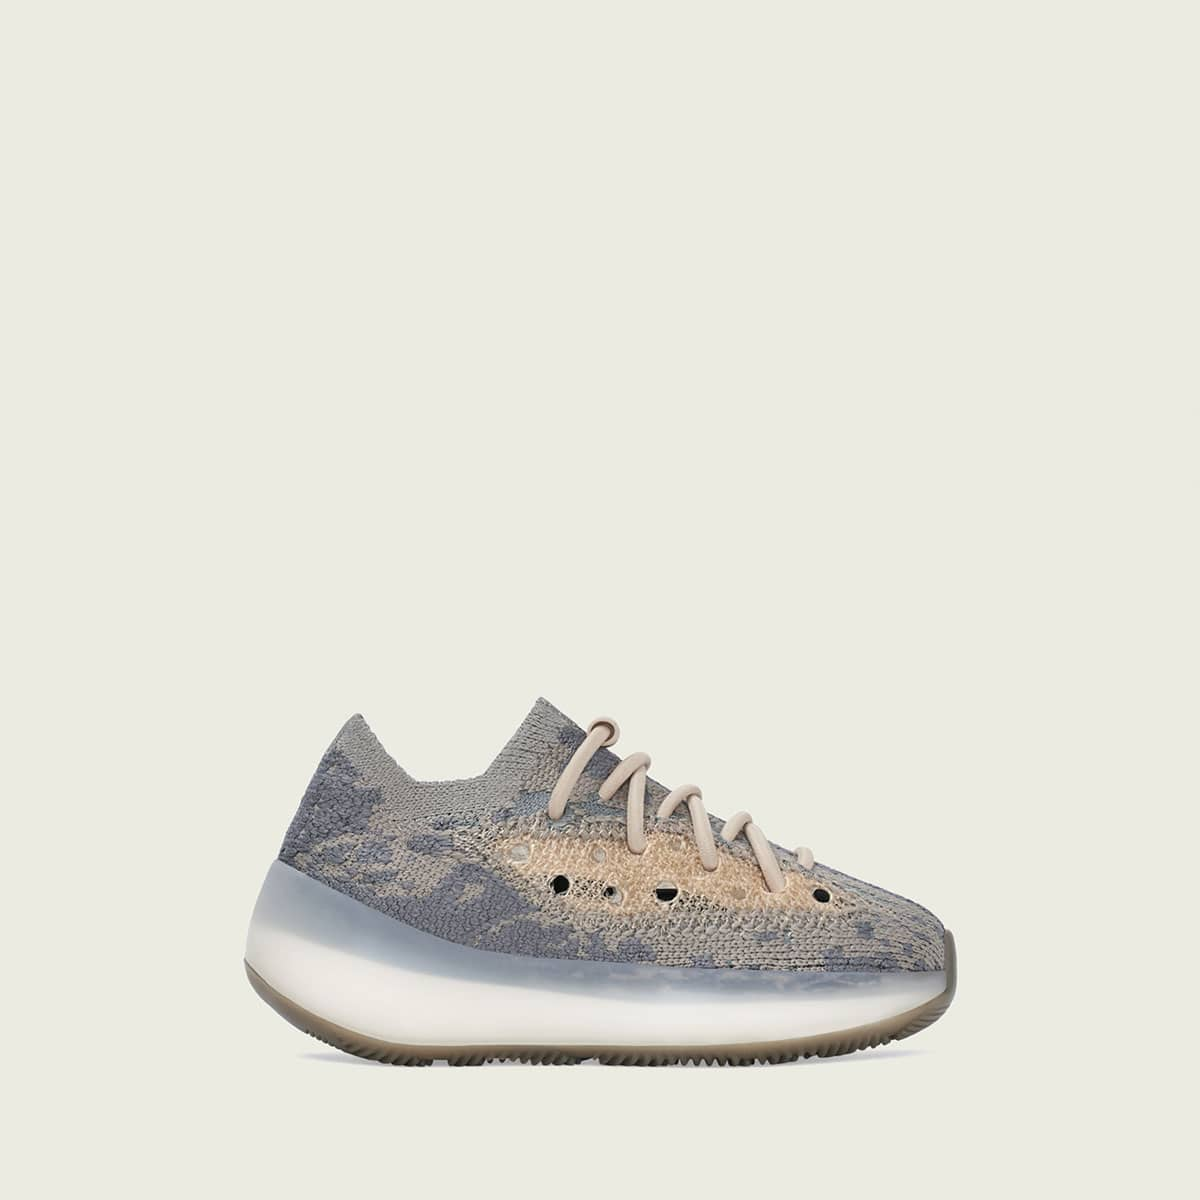 adidas YEEZY BOOST 380 INFANTS MIST/MIST/MIST 20SS-S_photo_large